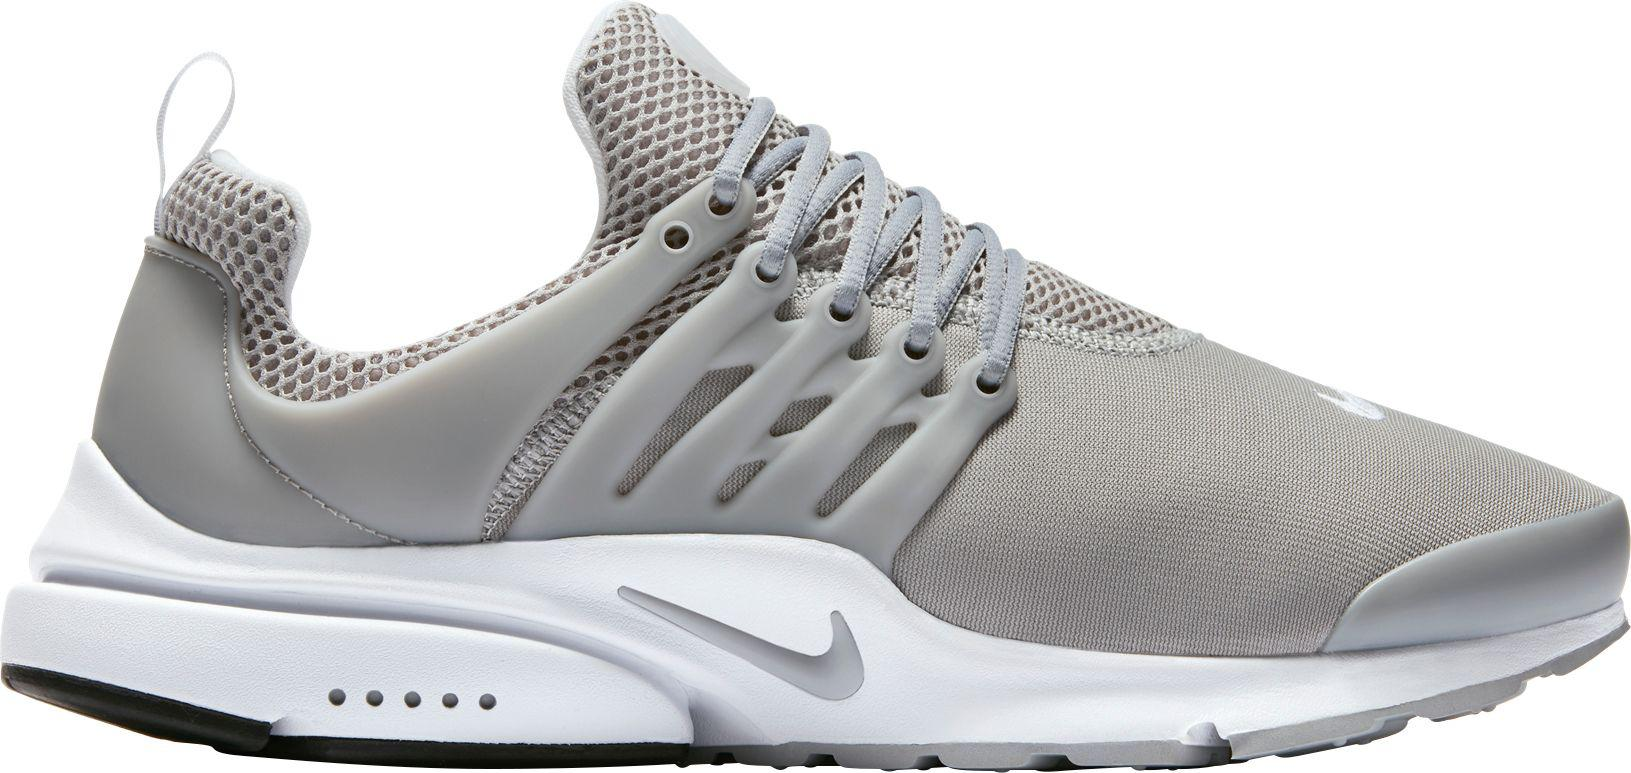 322f3b515 Lyst - Nike Air Presto Essential Shoes in Gray for Men